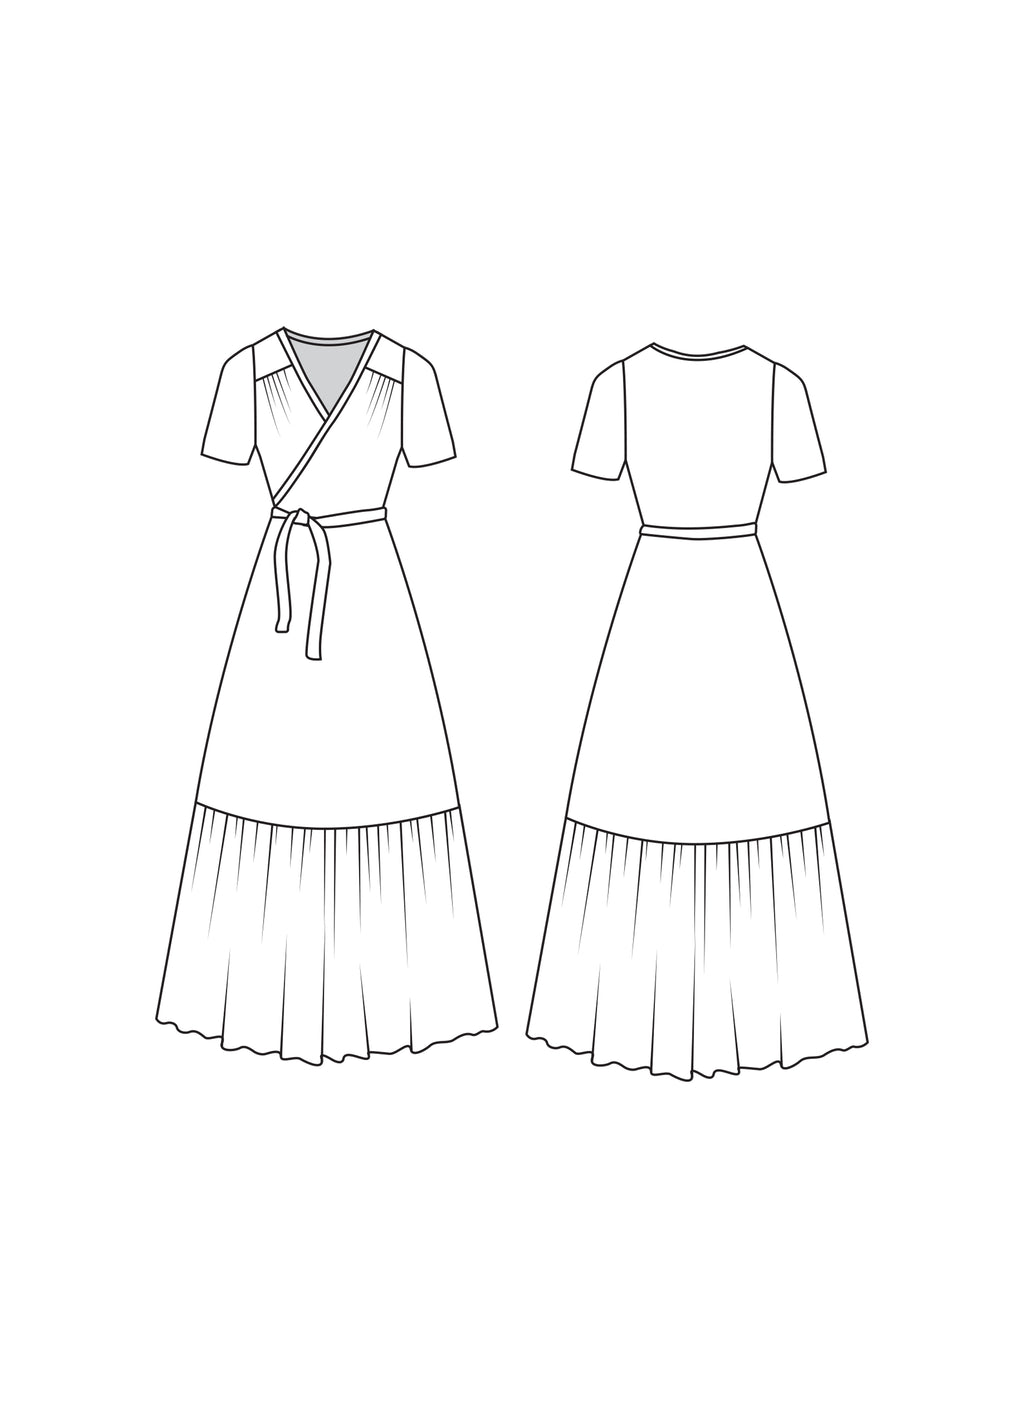 The Westcliff Dress - PDF Pattern